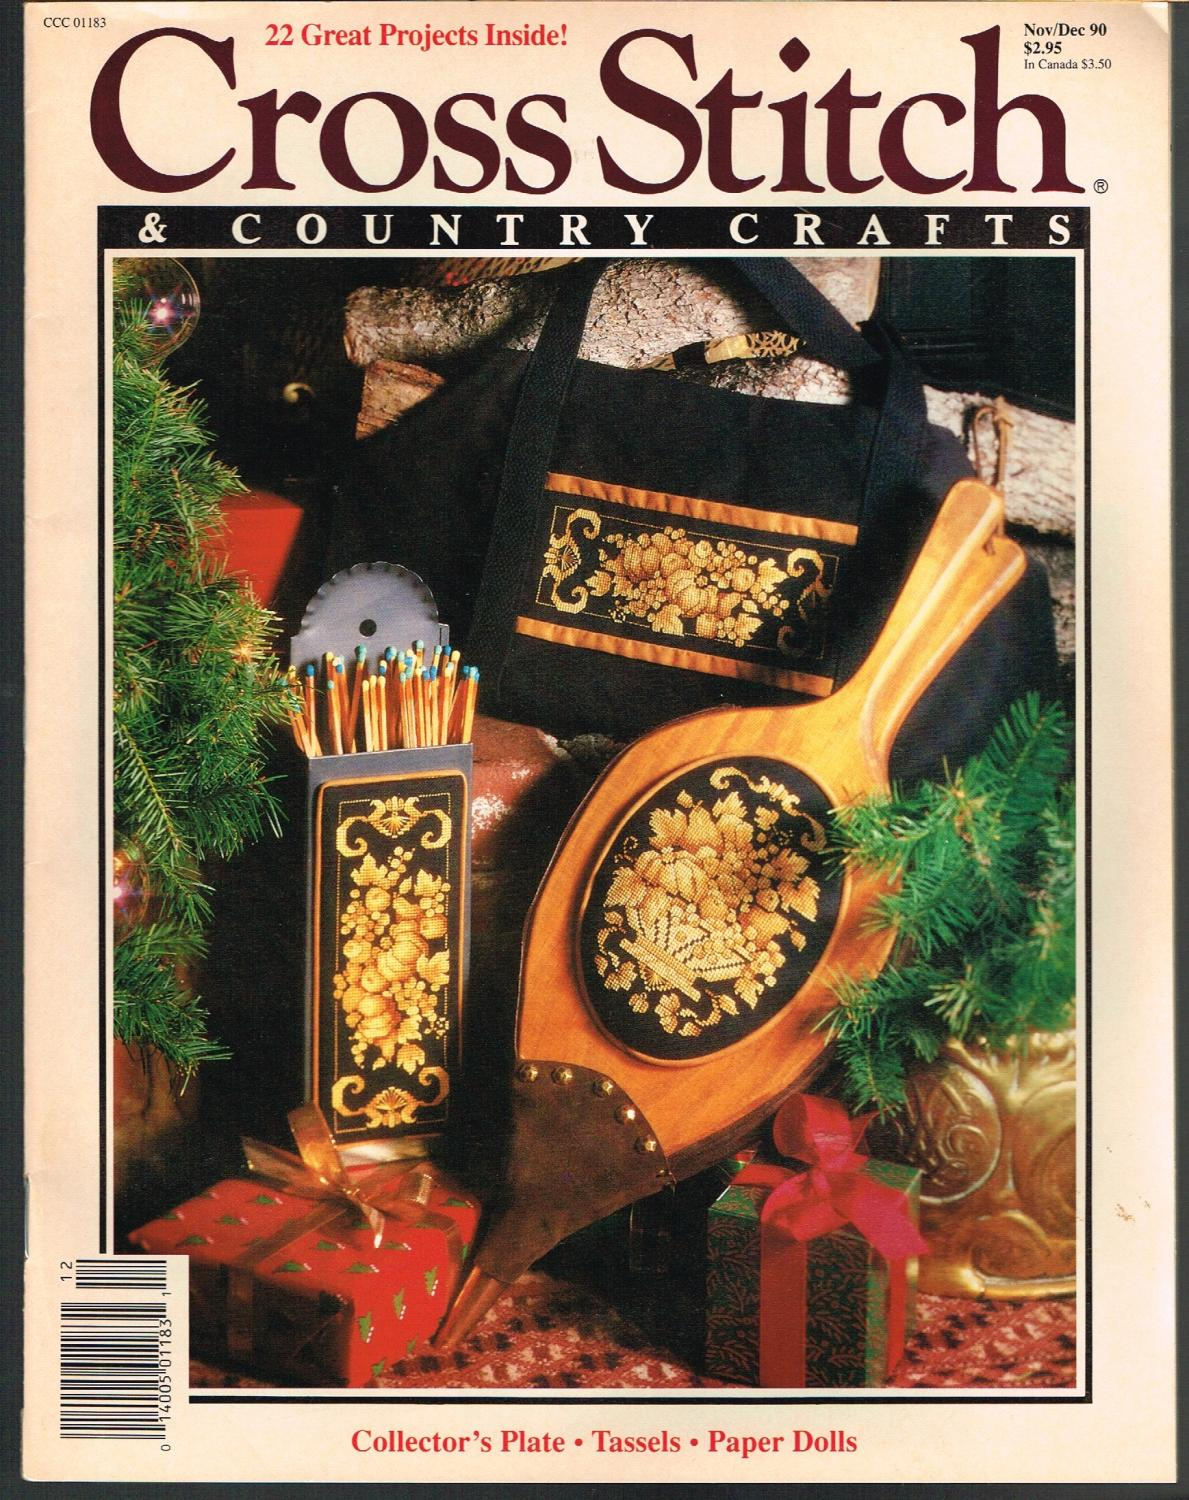 CROSS STITCH /& COUNTRY CRAFTS Magazine Back Issue Nov Dec 1990 90  22 projects